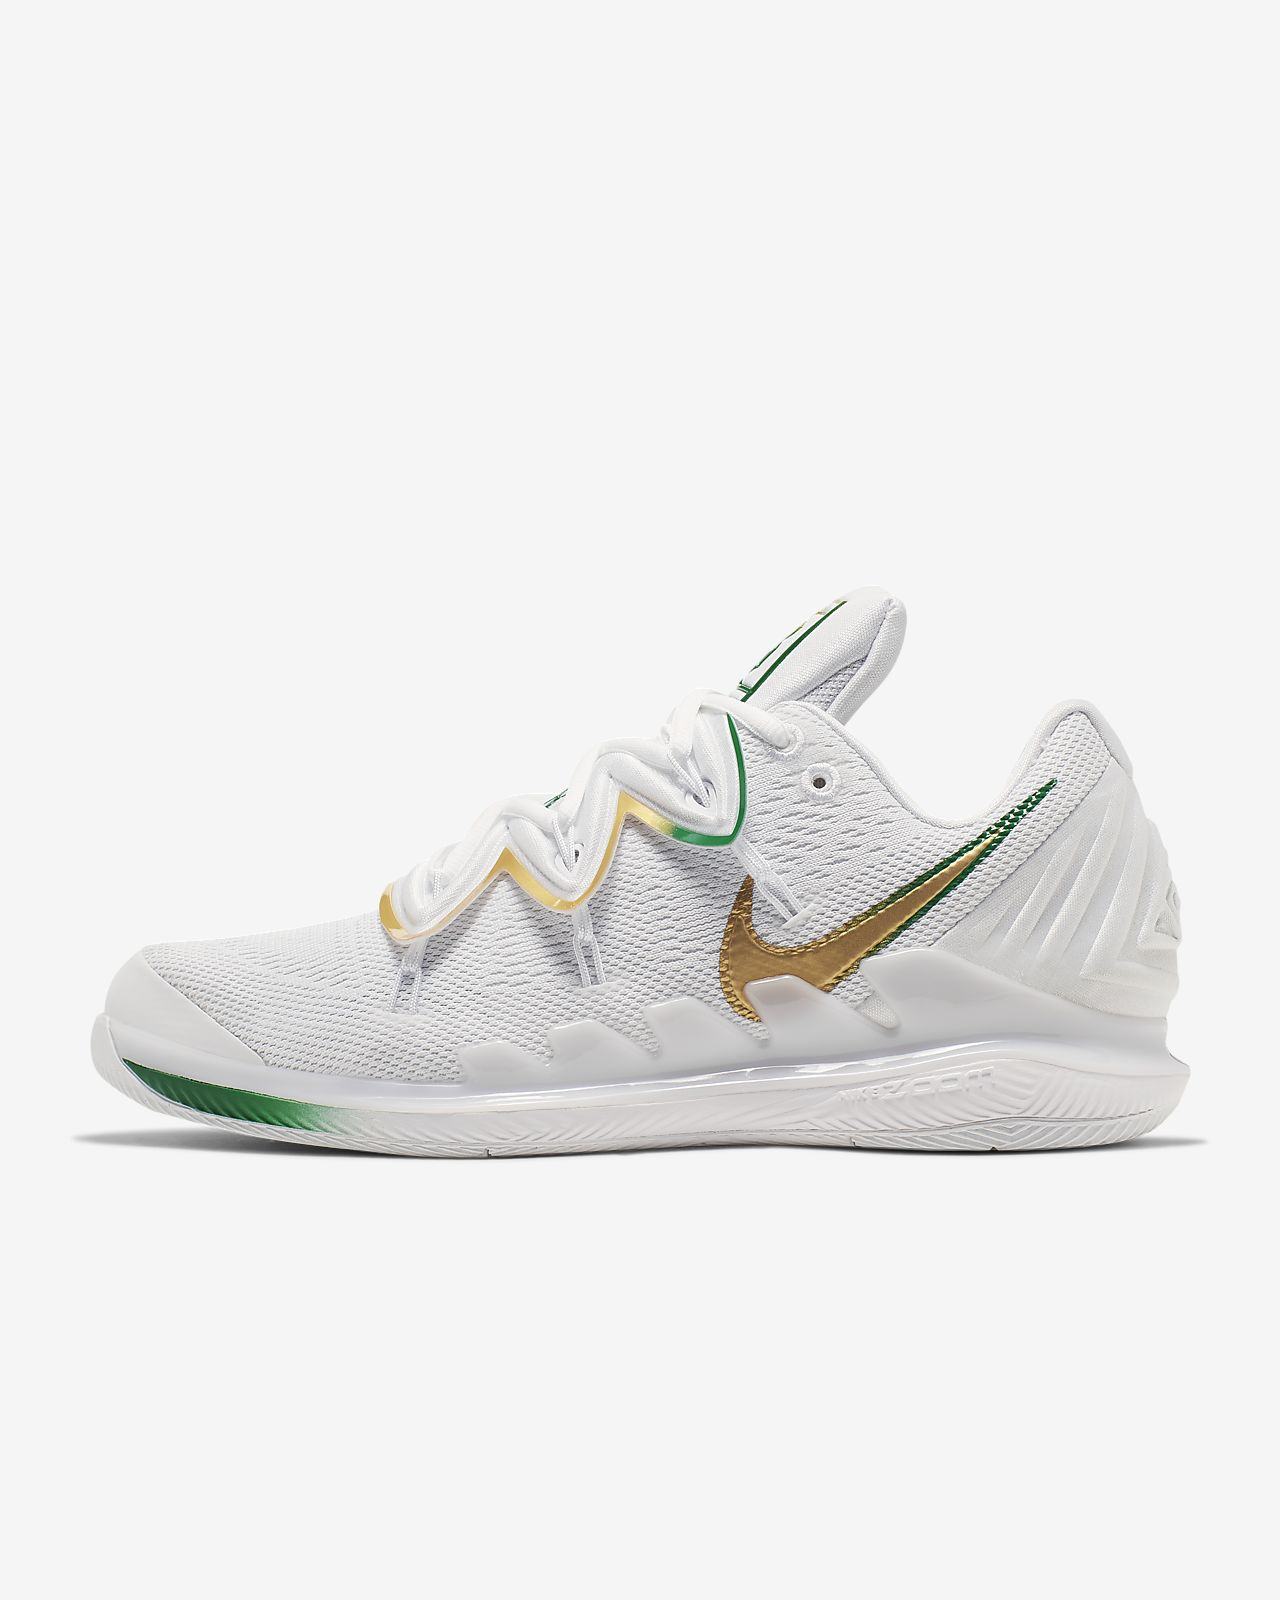 the best attitude 8c9e7 671df NikeCourt Air Zoom Vapor X Kyrie 5 Men's Hard Court Tennis Shoe